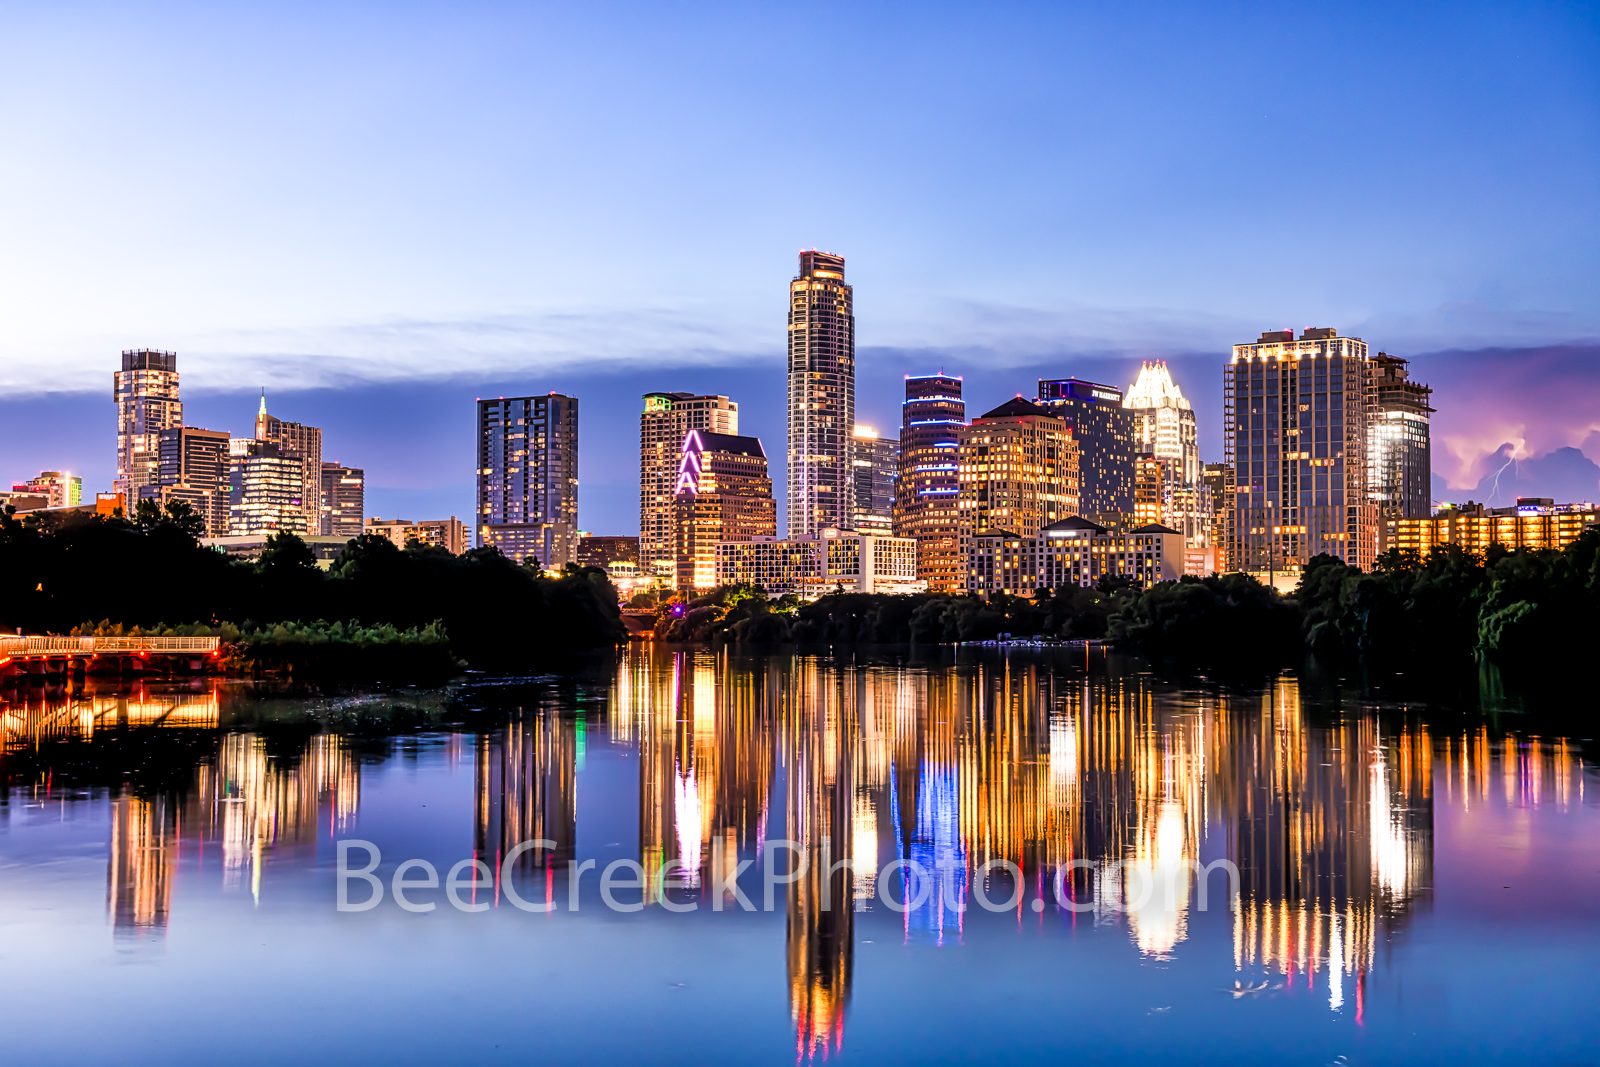 Austin Skyline, austin, skyline, pics of texas, boardwalk, violet, purple, pink, lavender, blue hour, night, buildings,  reflections, water, lady bird lake, urban, urban landscape, downtown, landscape